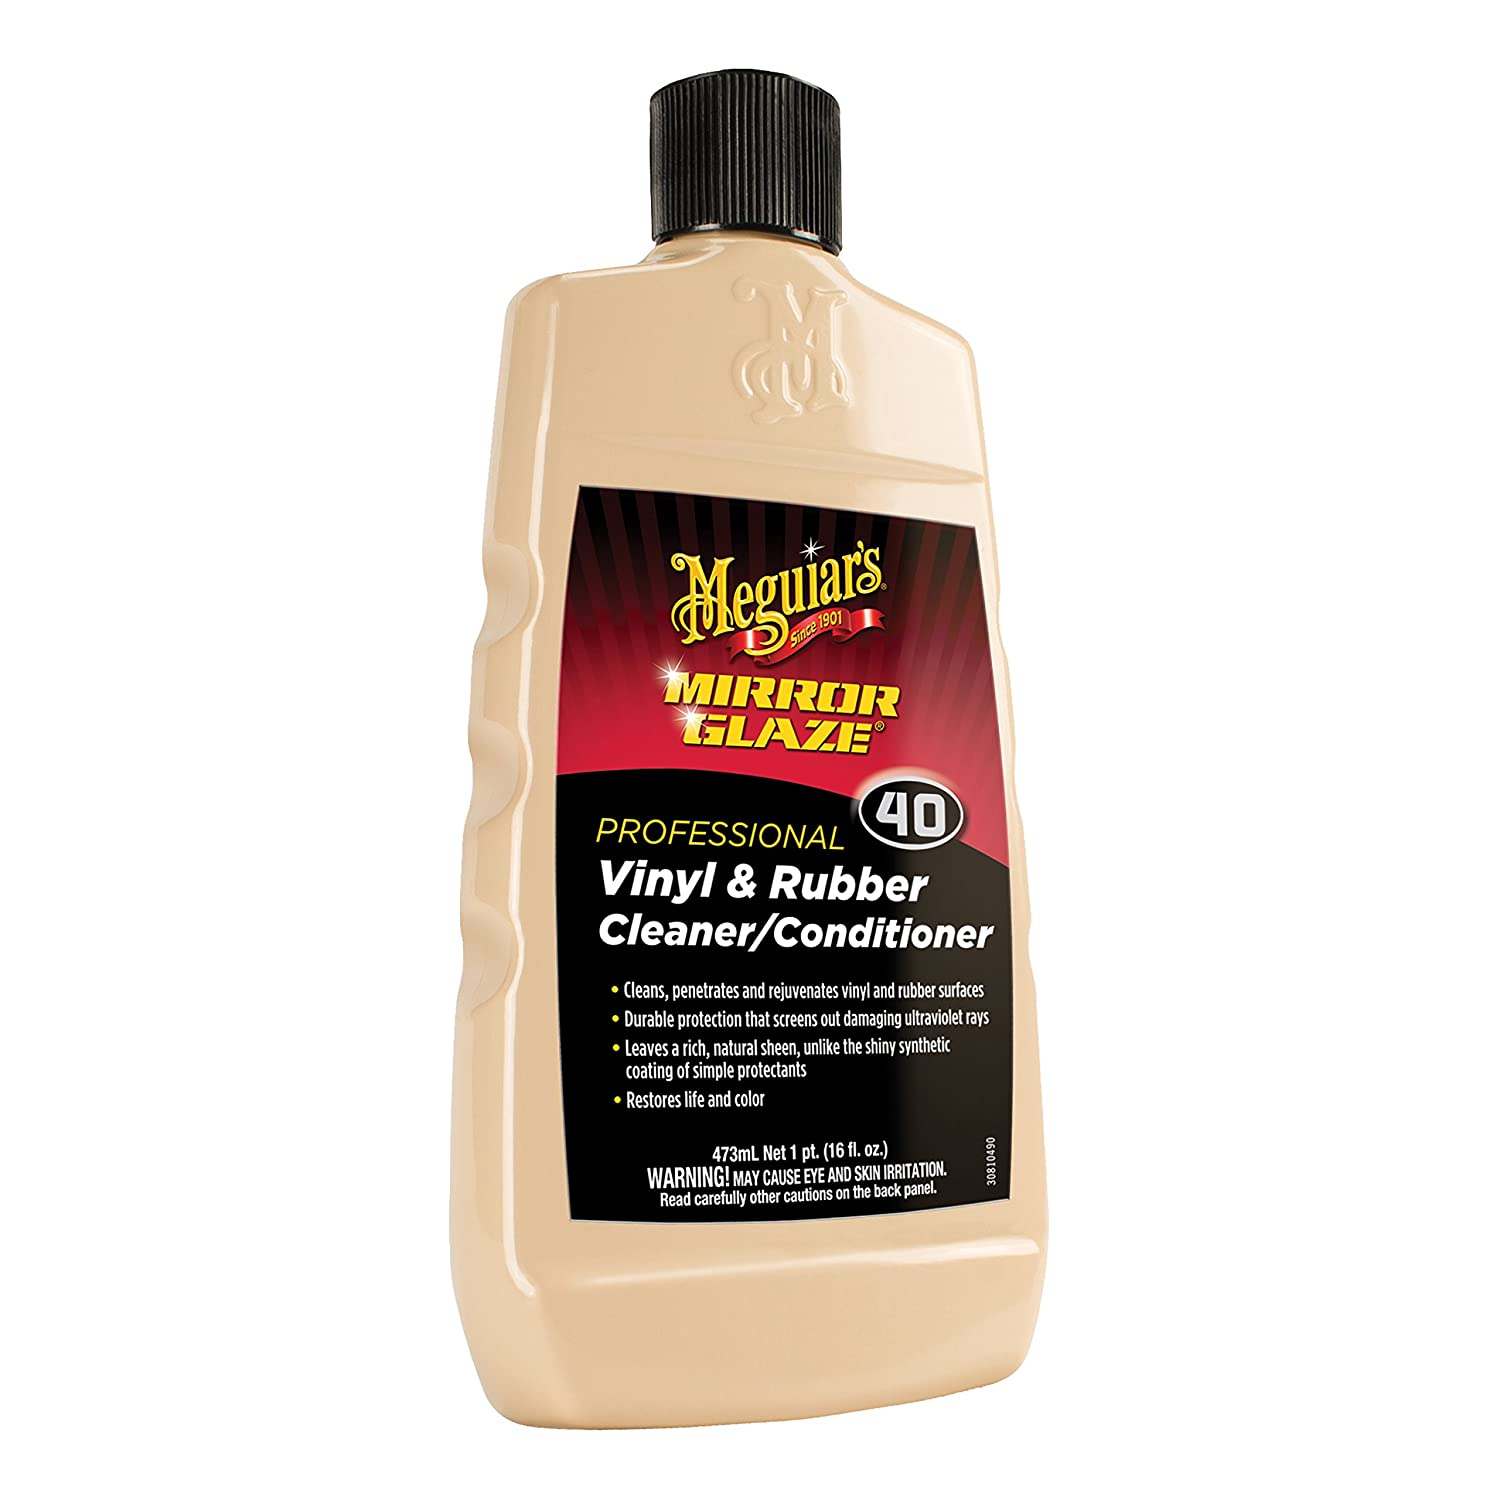 Meguiars Mirror Glaze Vinyl & Rubber Conditioner